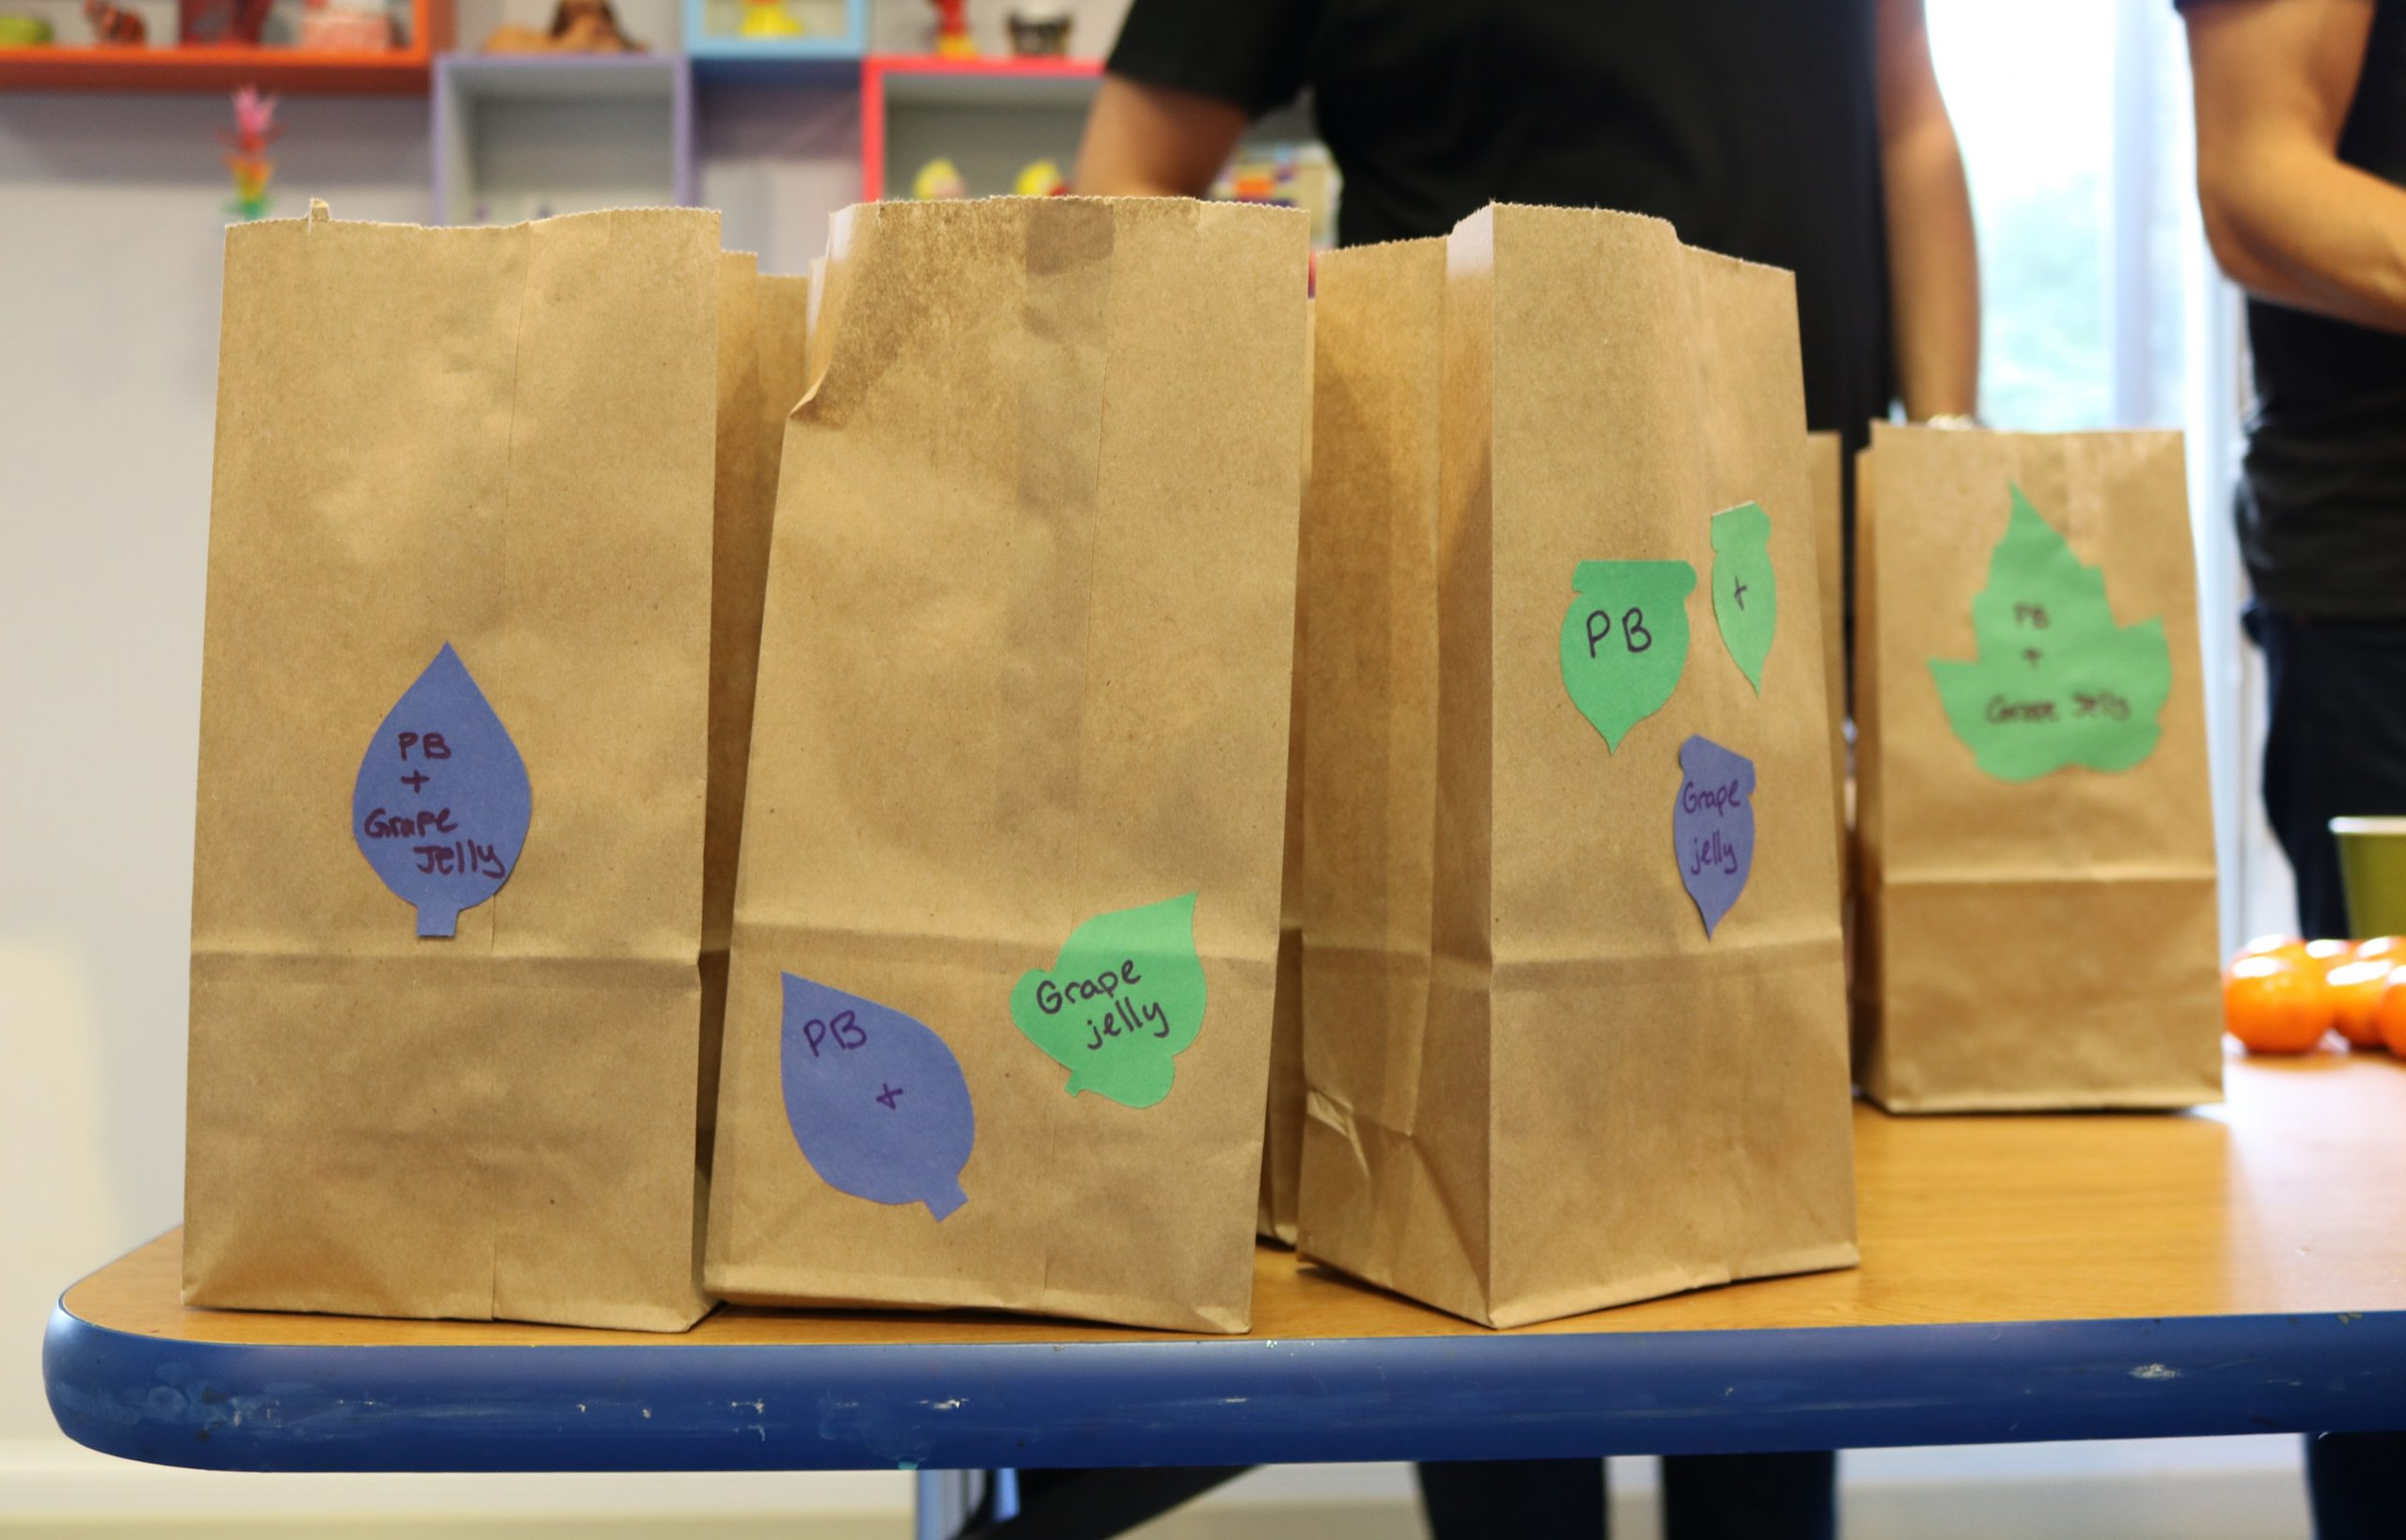 Bagged surprised for the children